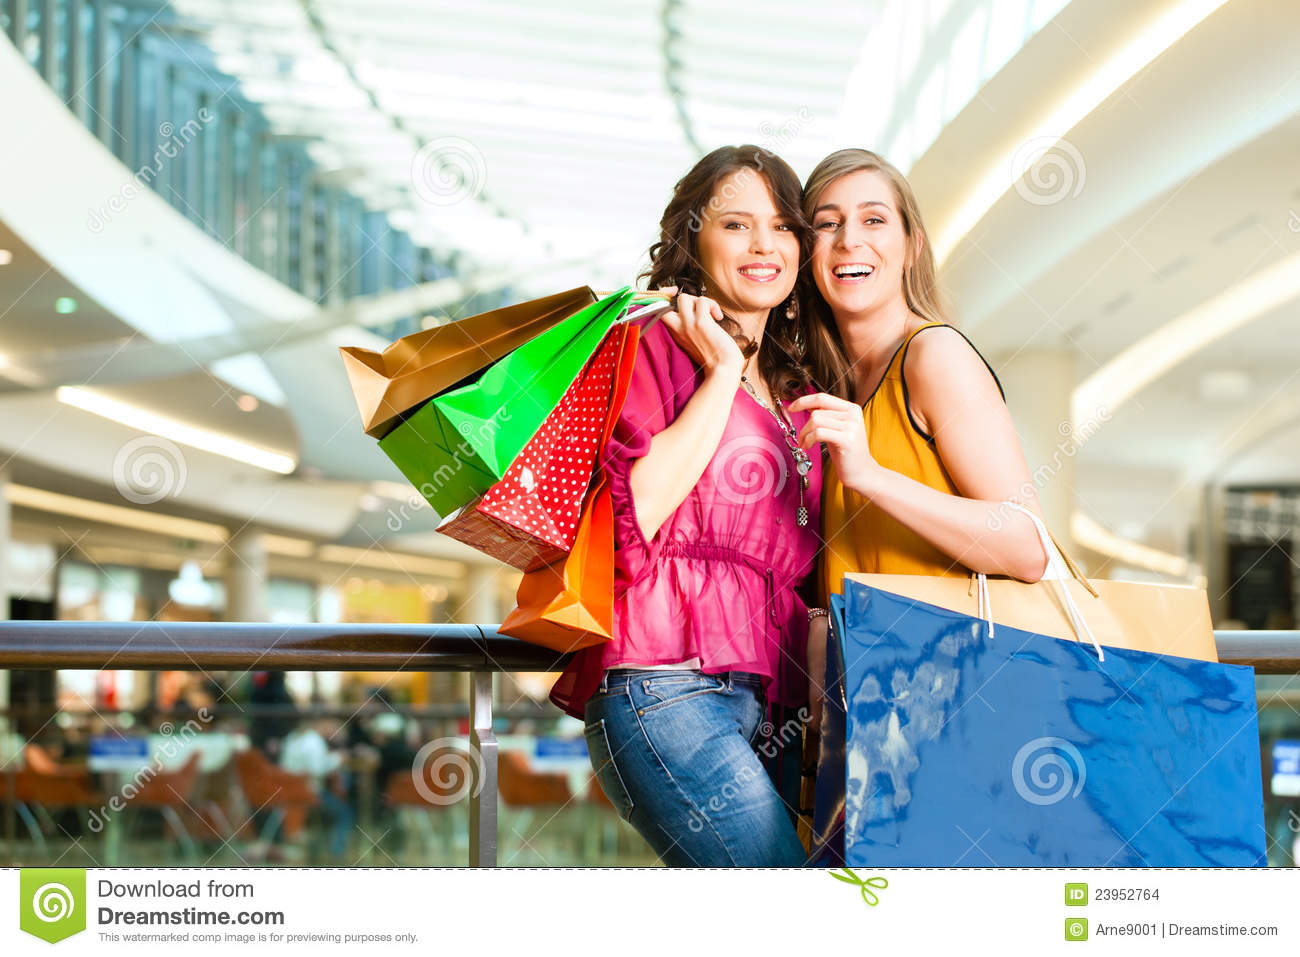 two-women-shopping-bags-mall-23952764.jpg